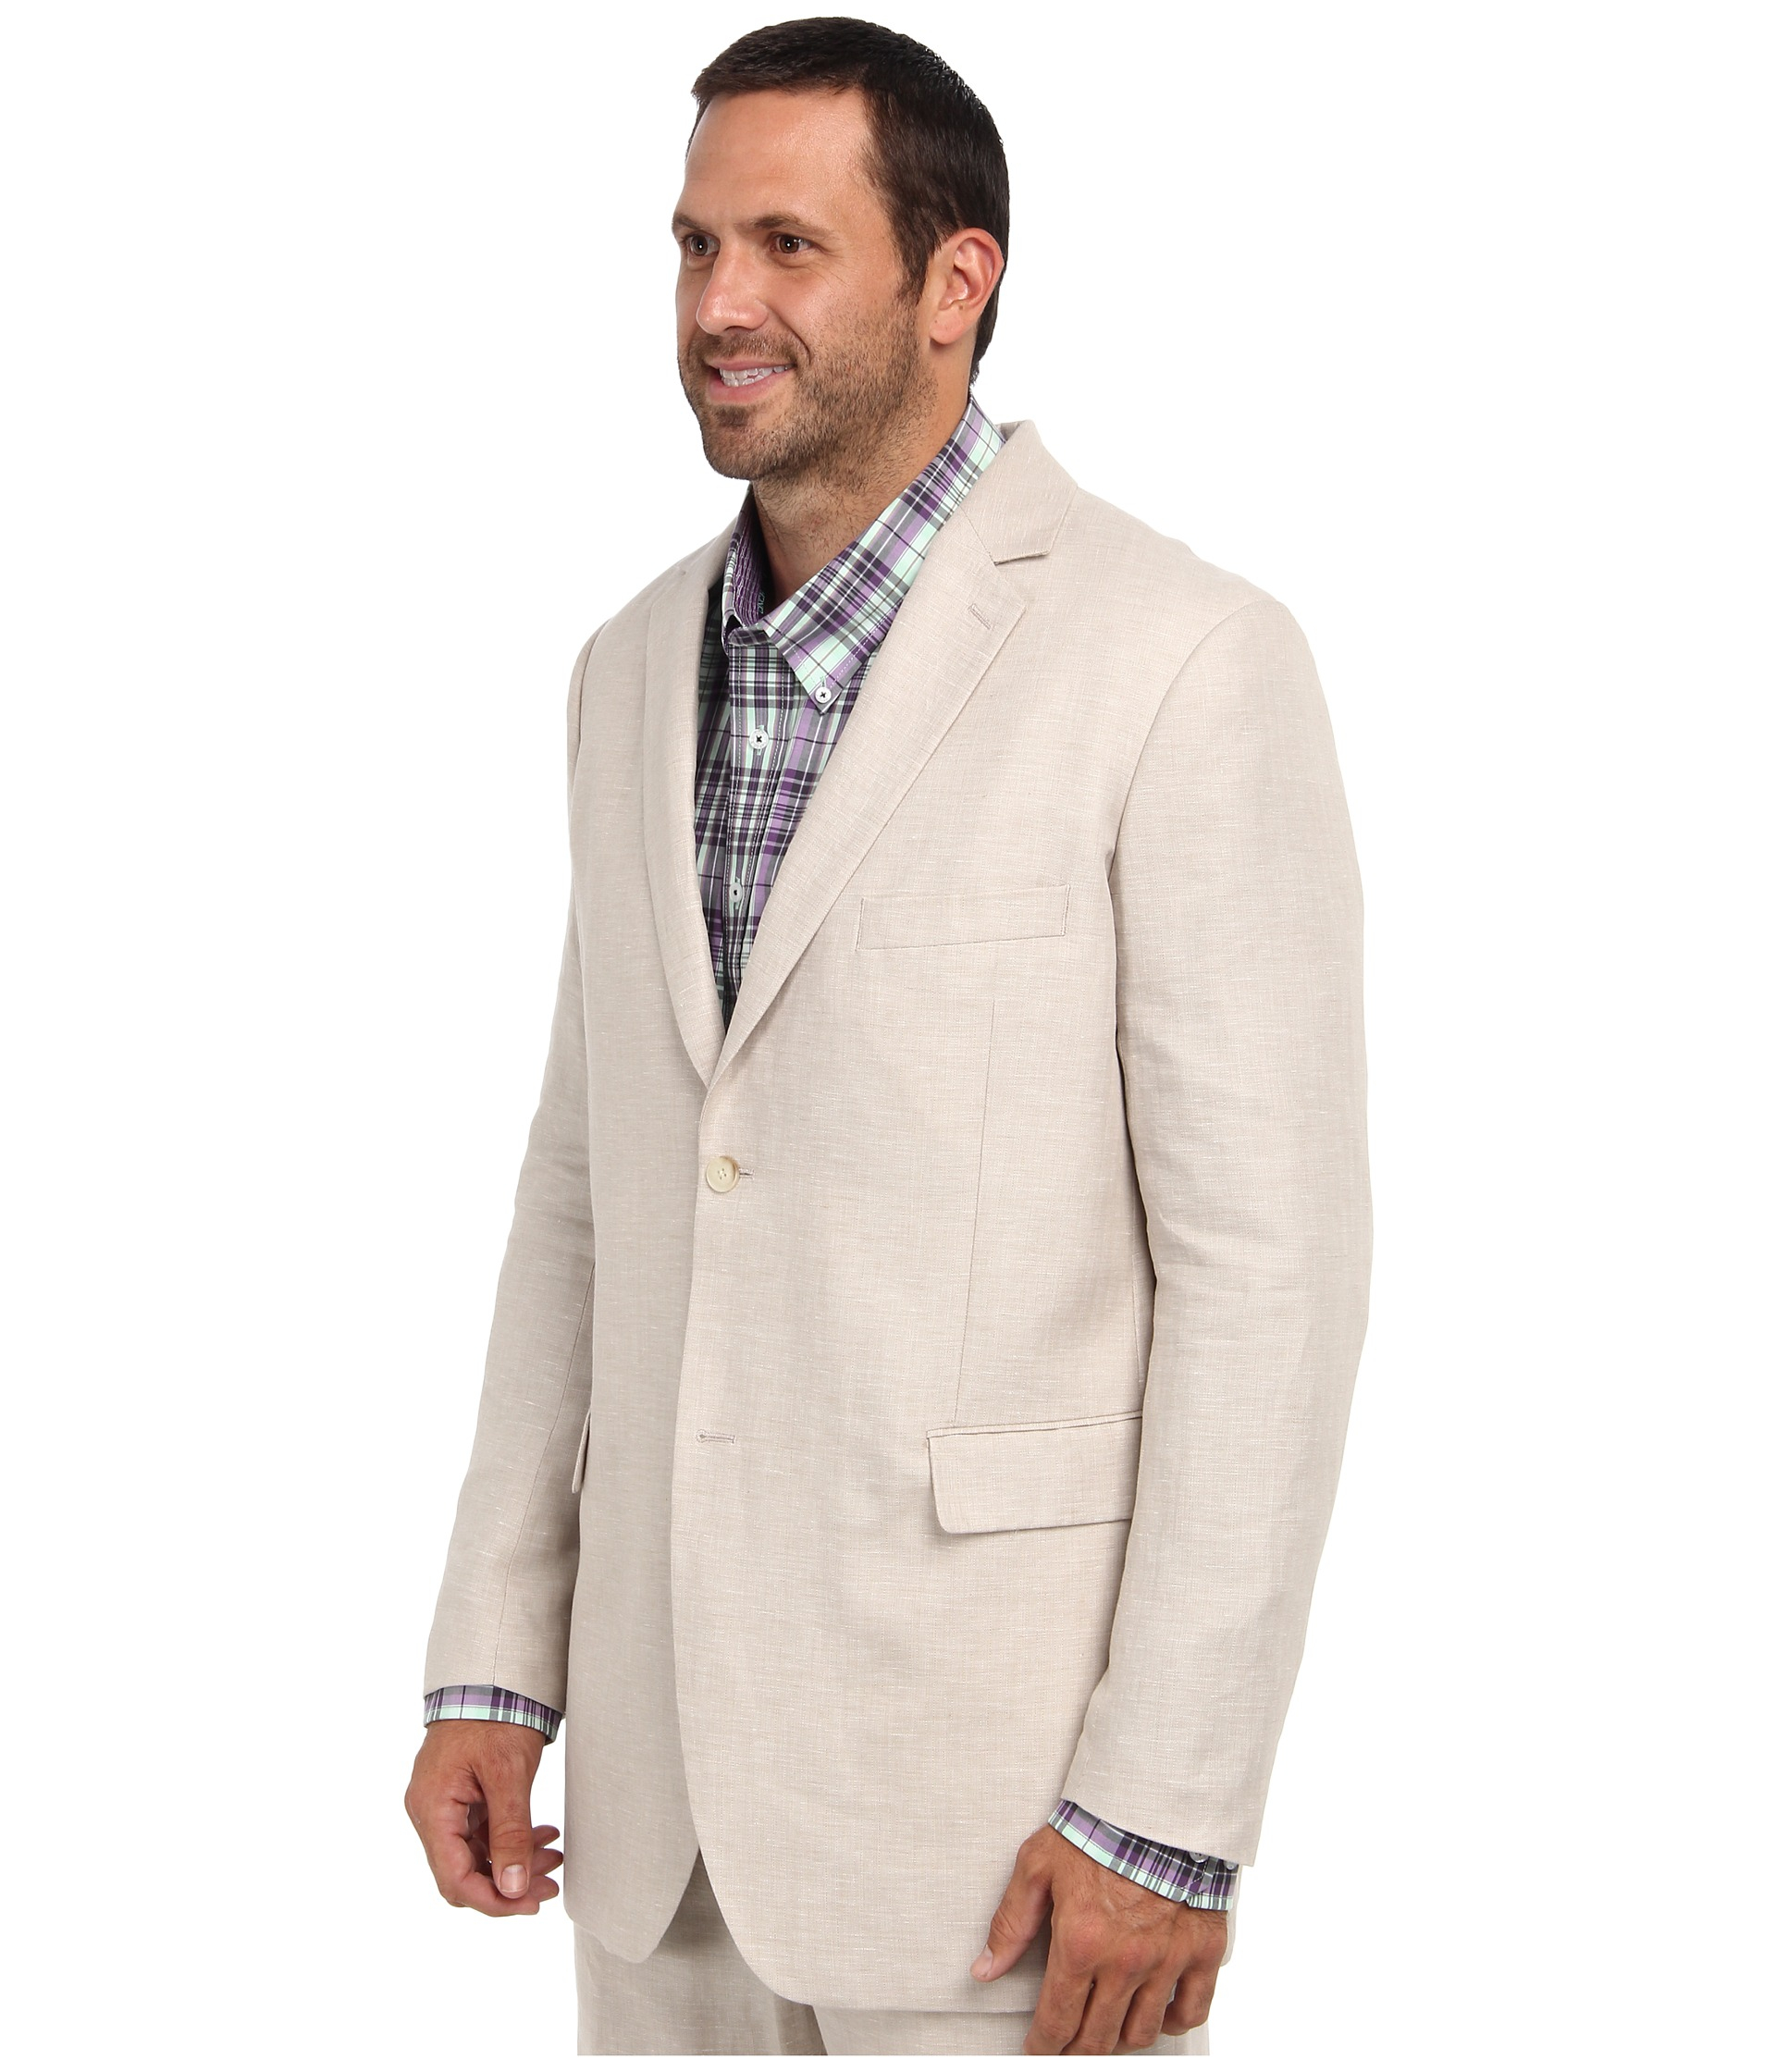 Men's big and tall linen suits in XL sizes. Find great deals on linen suits in large sizes. Sizes start at jacket size 40 and up. Wide selection of brand names for big & tall men.